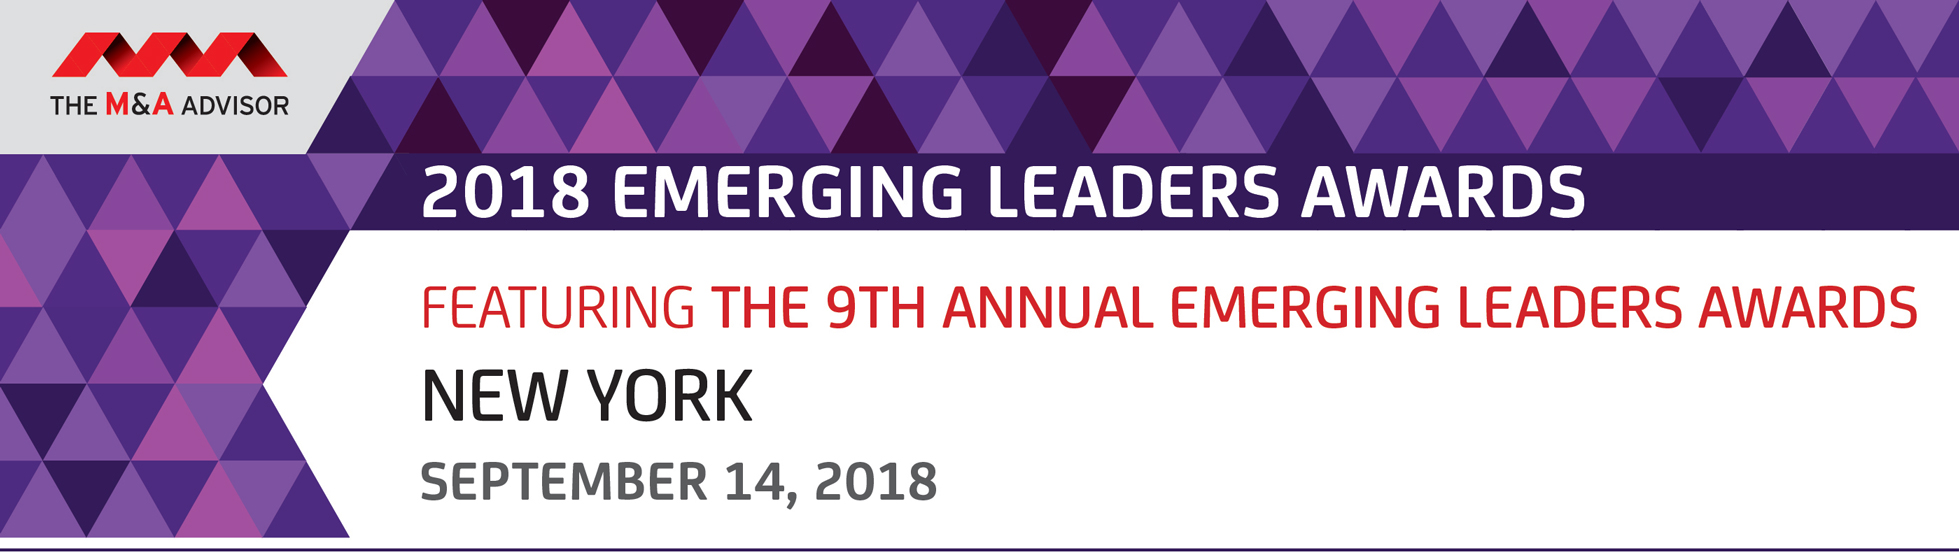 2018 Emerging Leaders Summit featuring the 9th Annual Emerging Leaders Awards